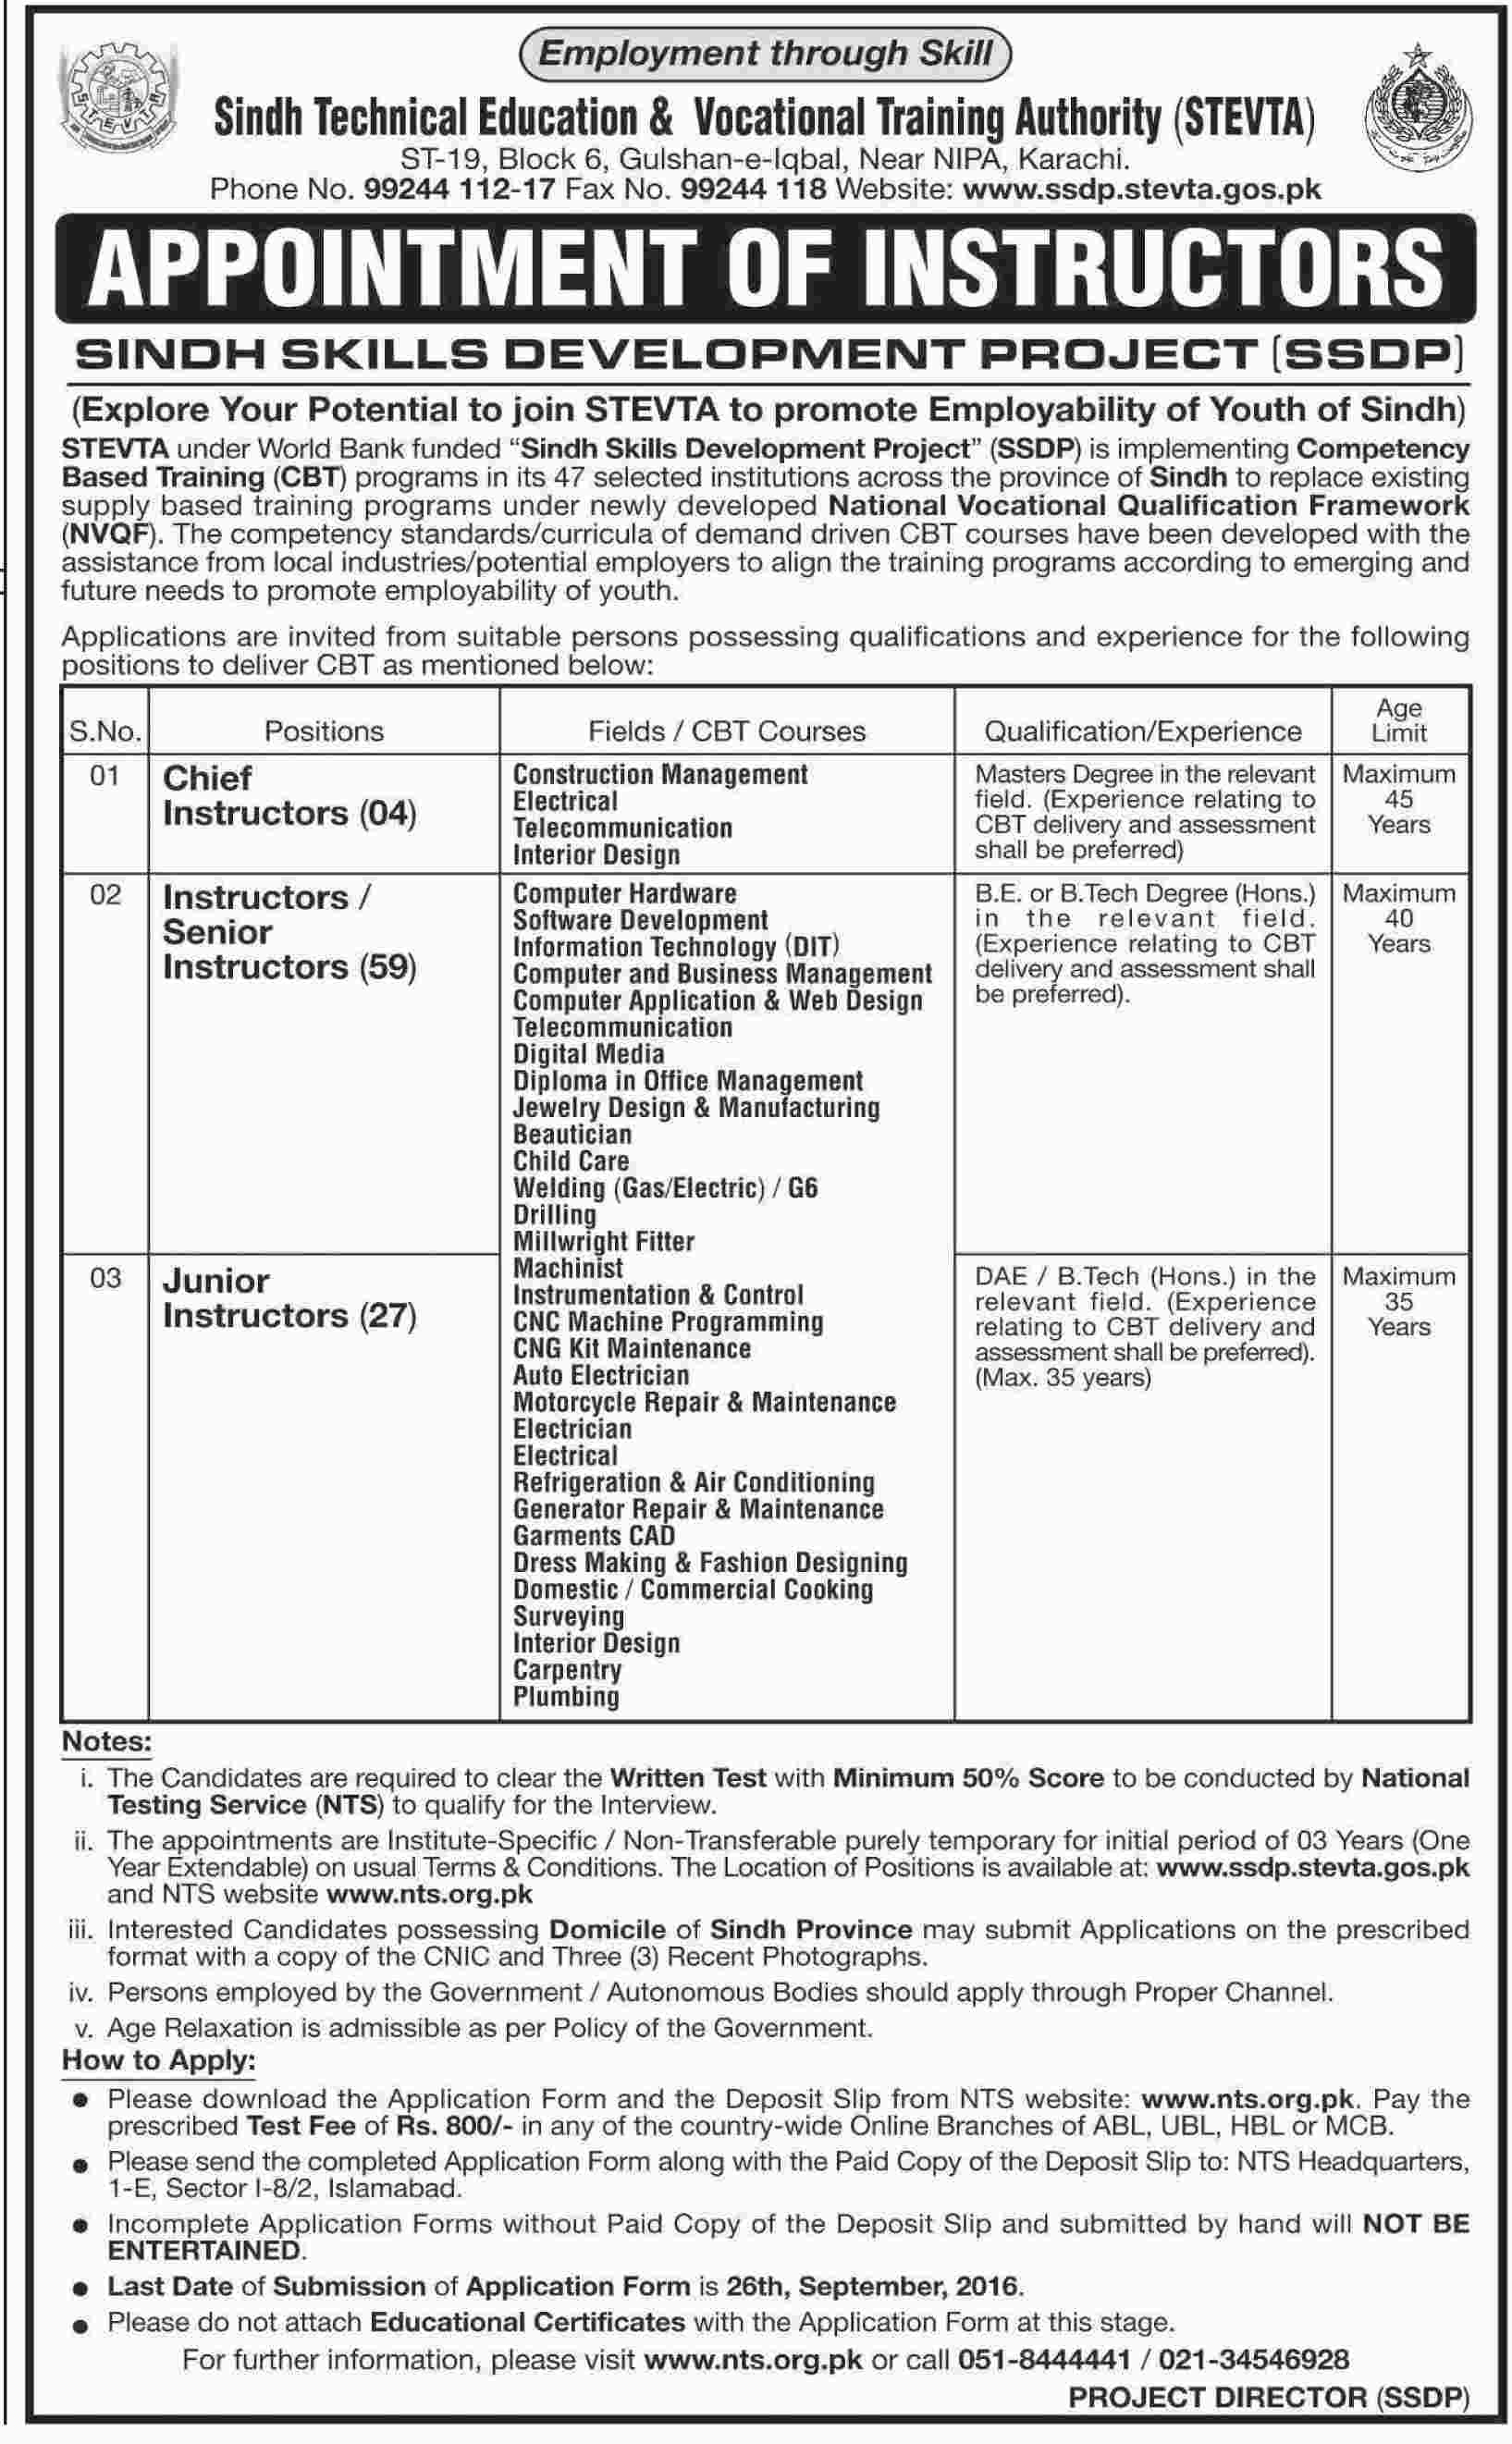 technical education and vocational training authority jobs  sindh technical education and vocational training authority jobs 2016 stevta advertisement